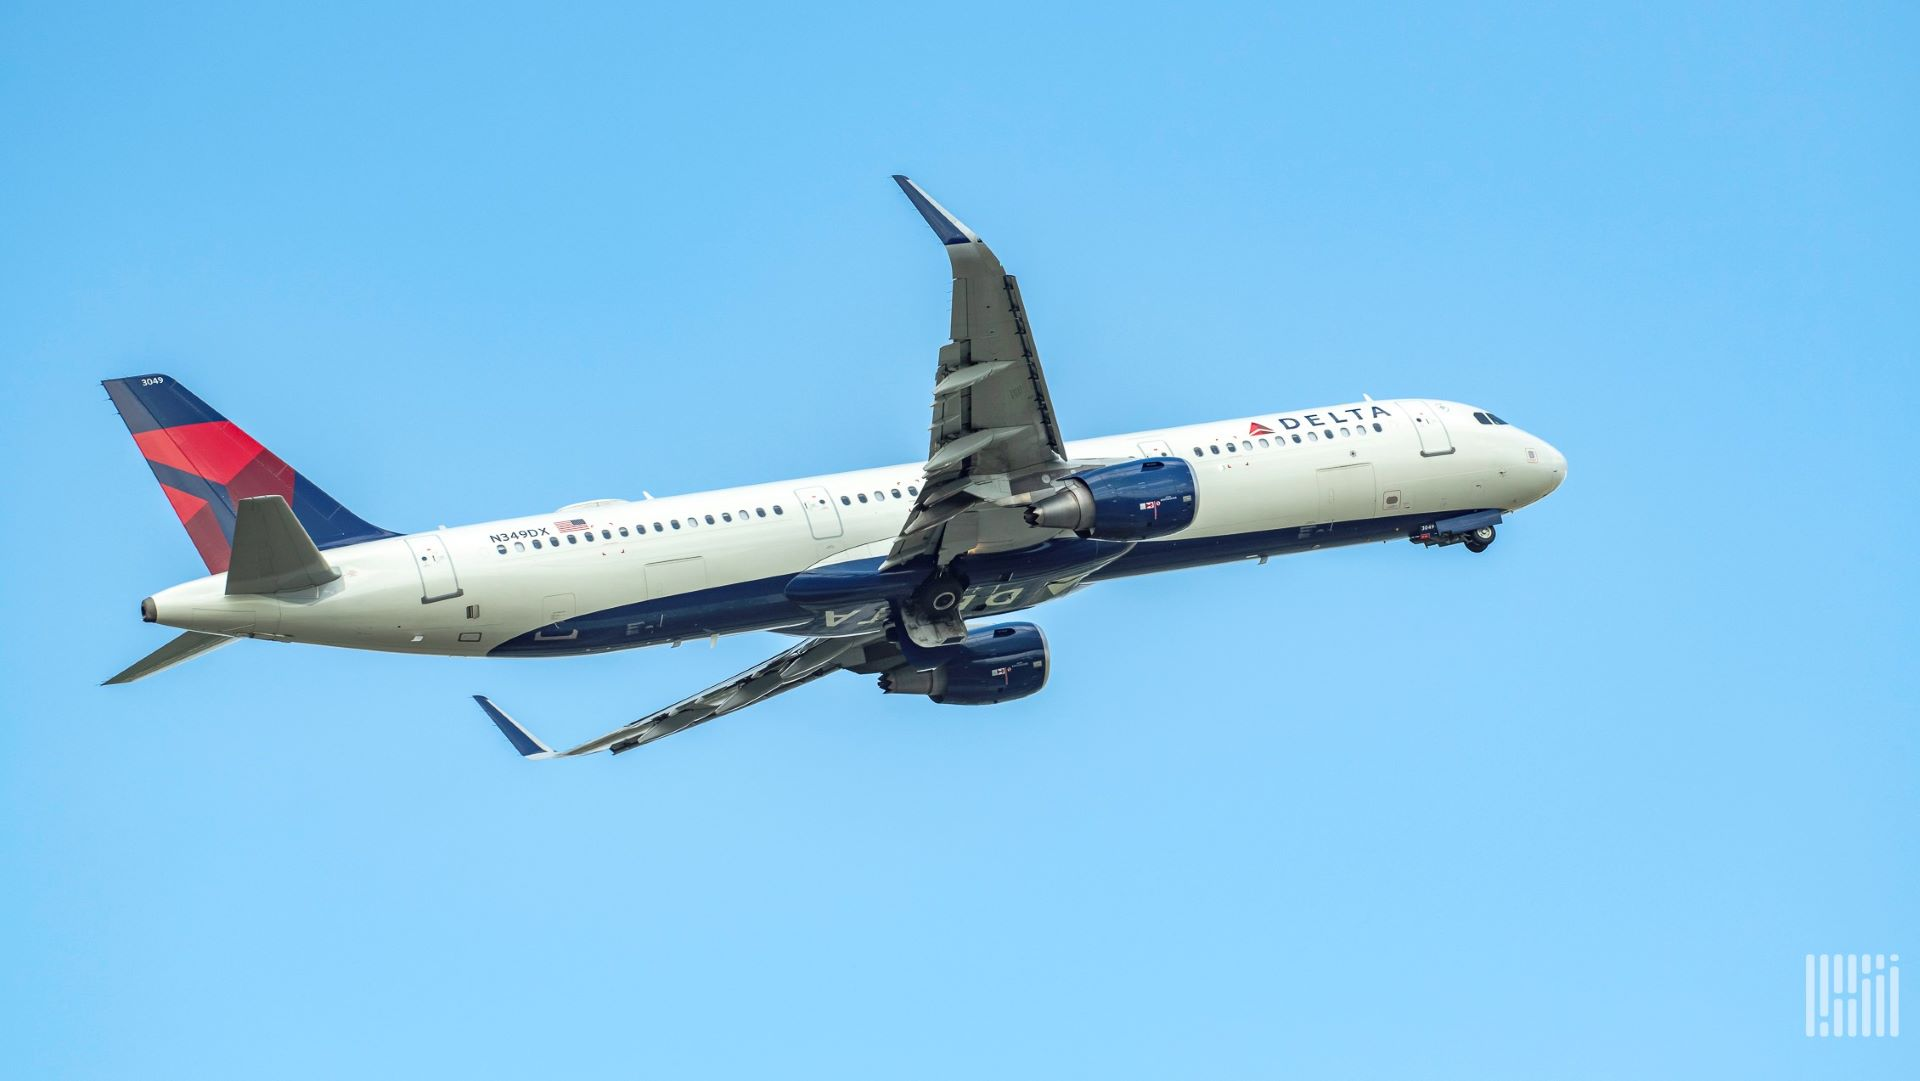 A white and blue-tailed Delta Air Lines jet flying upwards, view from below.